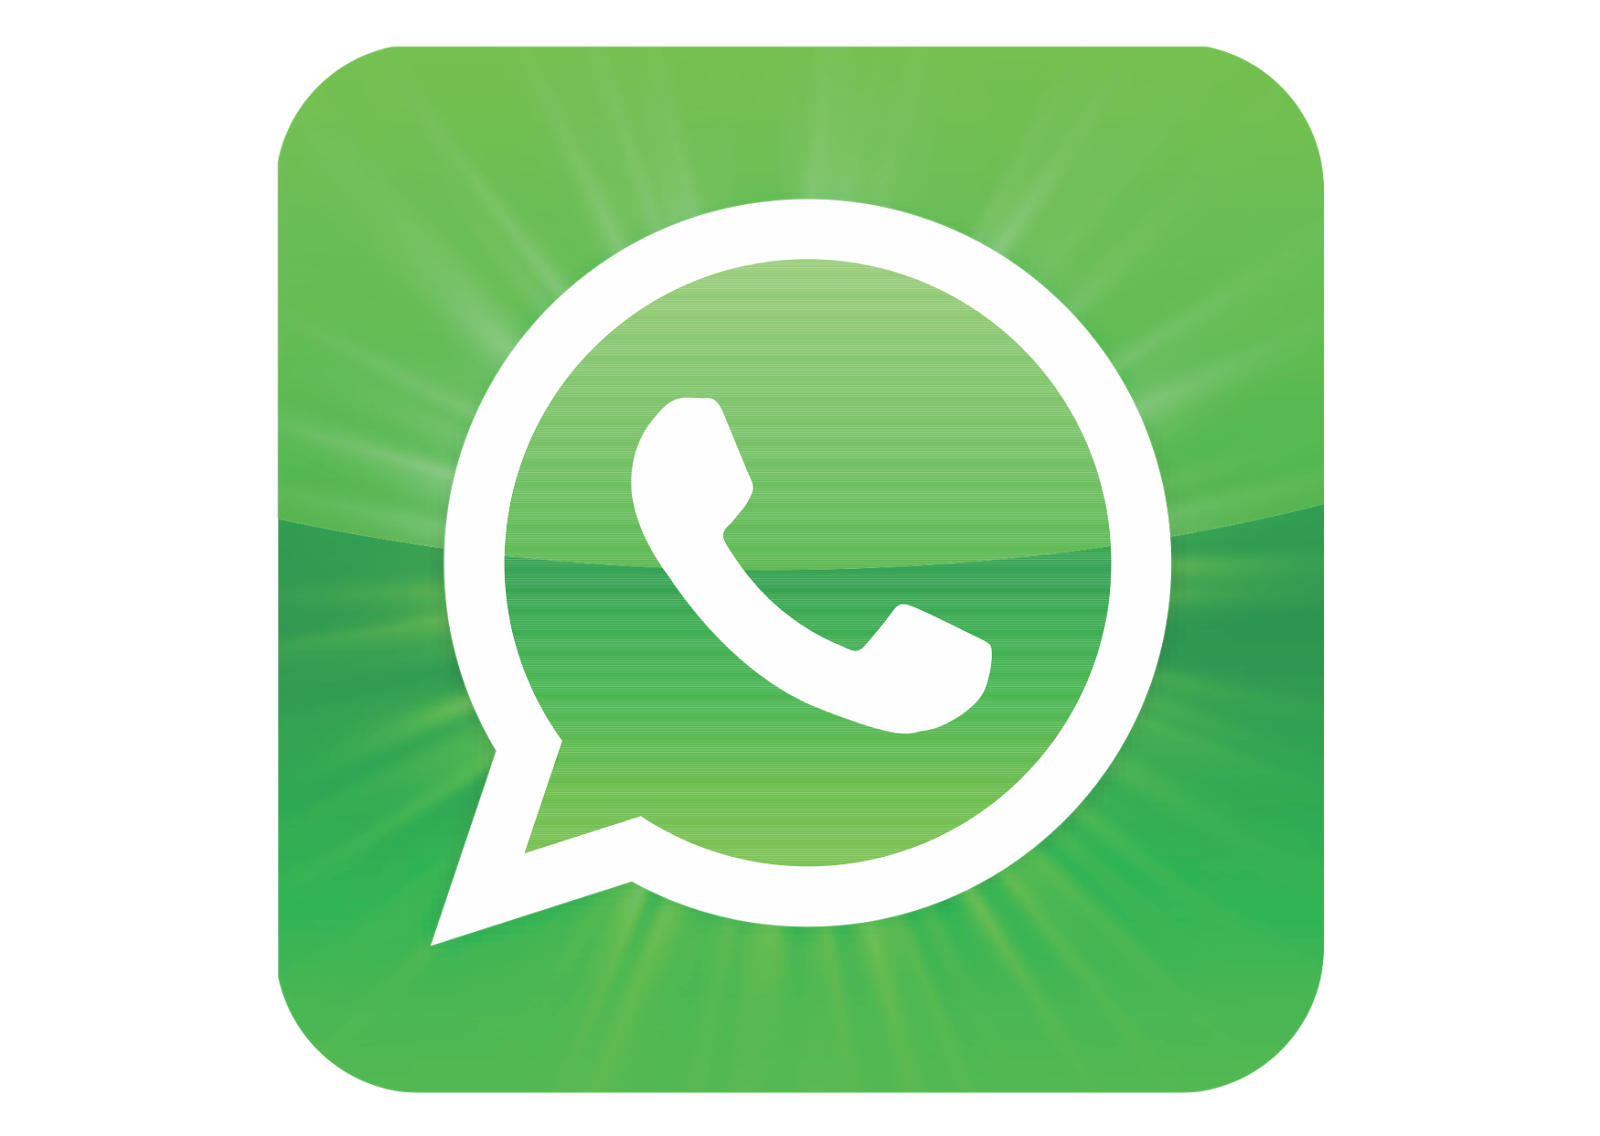 Whatsapp download logo. Free png images